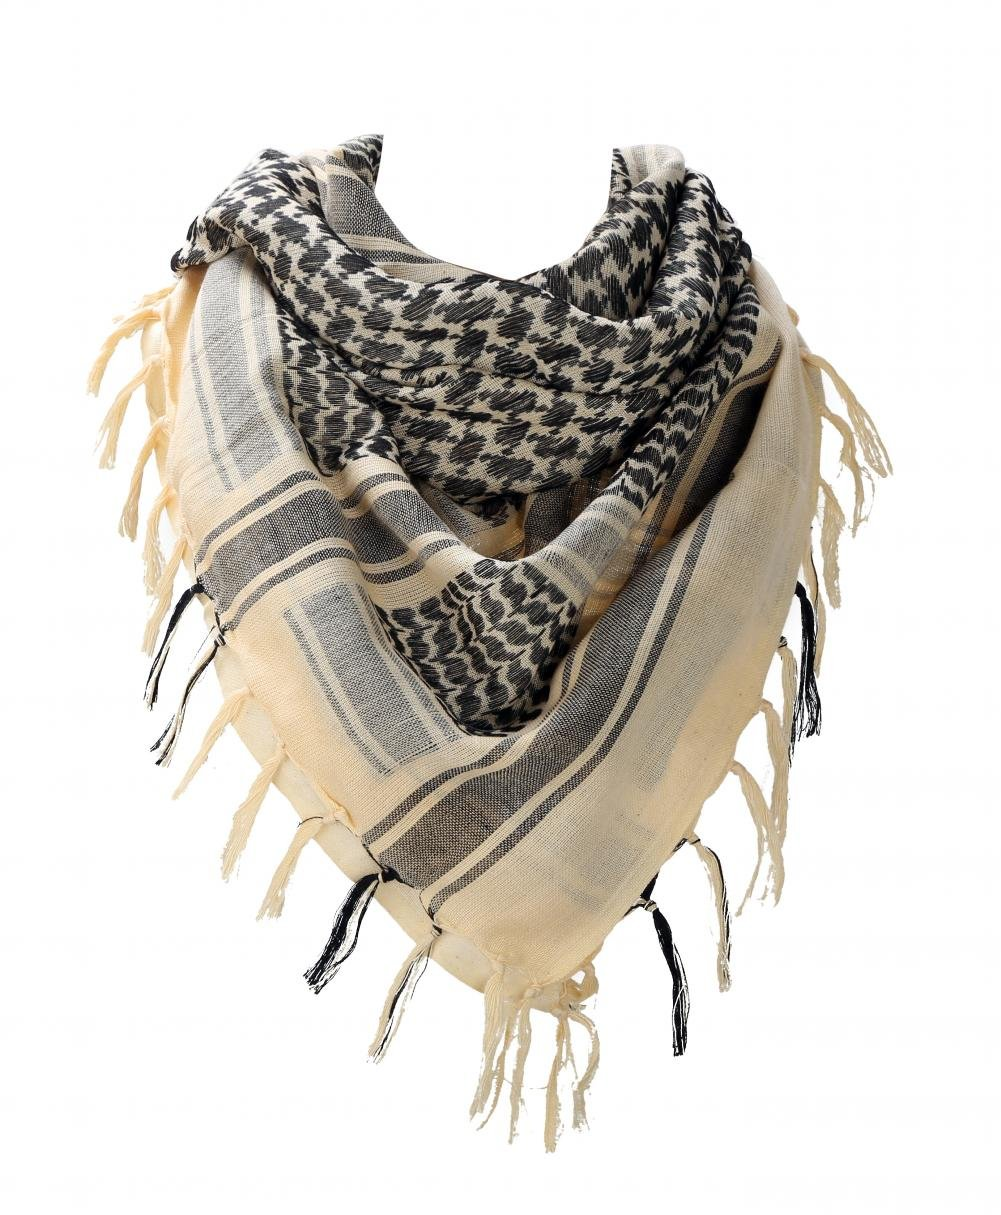 100 percent Cotton Military Shemagh Arab Tactical Desert Keffiyeh Thickened Scarf Wrap for Women and Men, Beige, One Size by VOCHIC